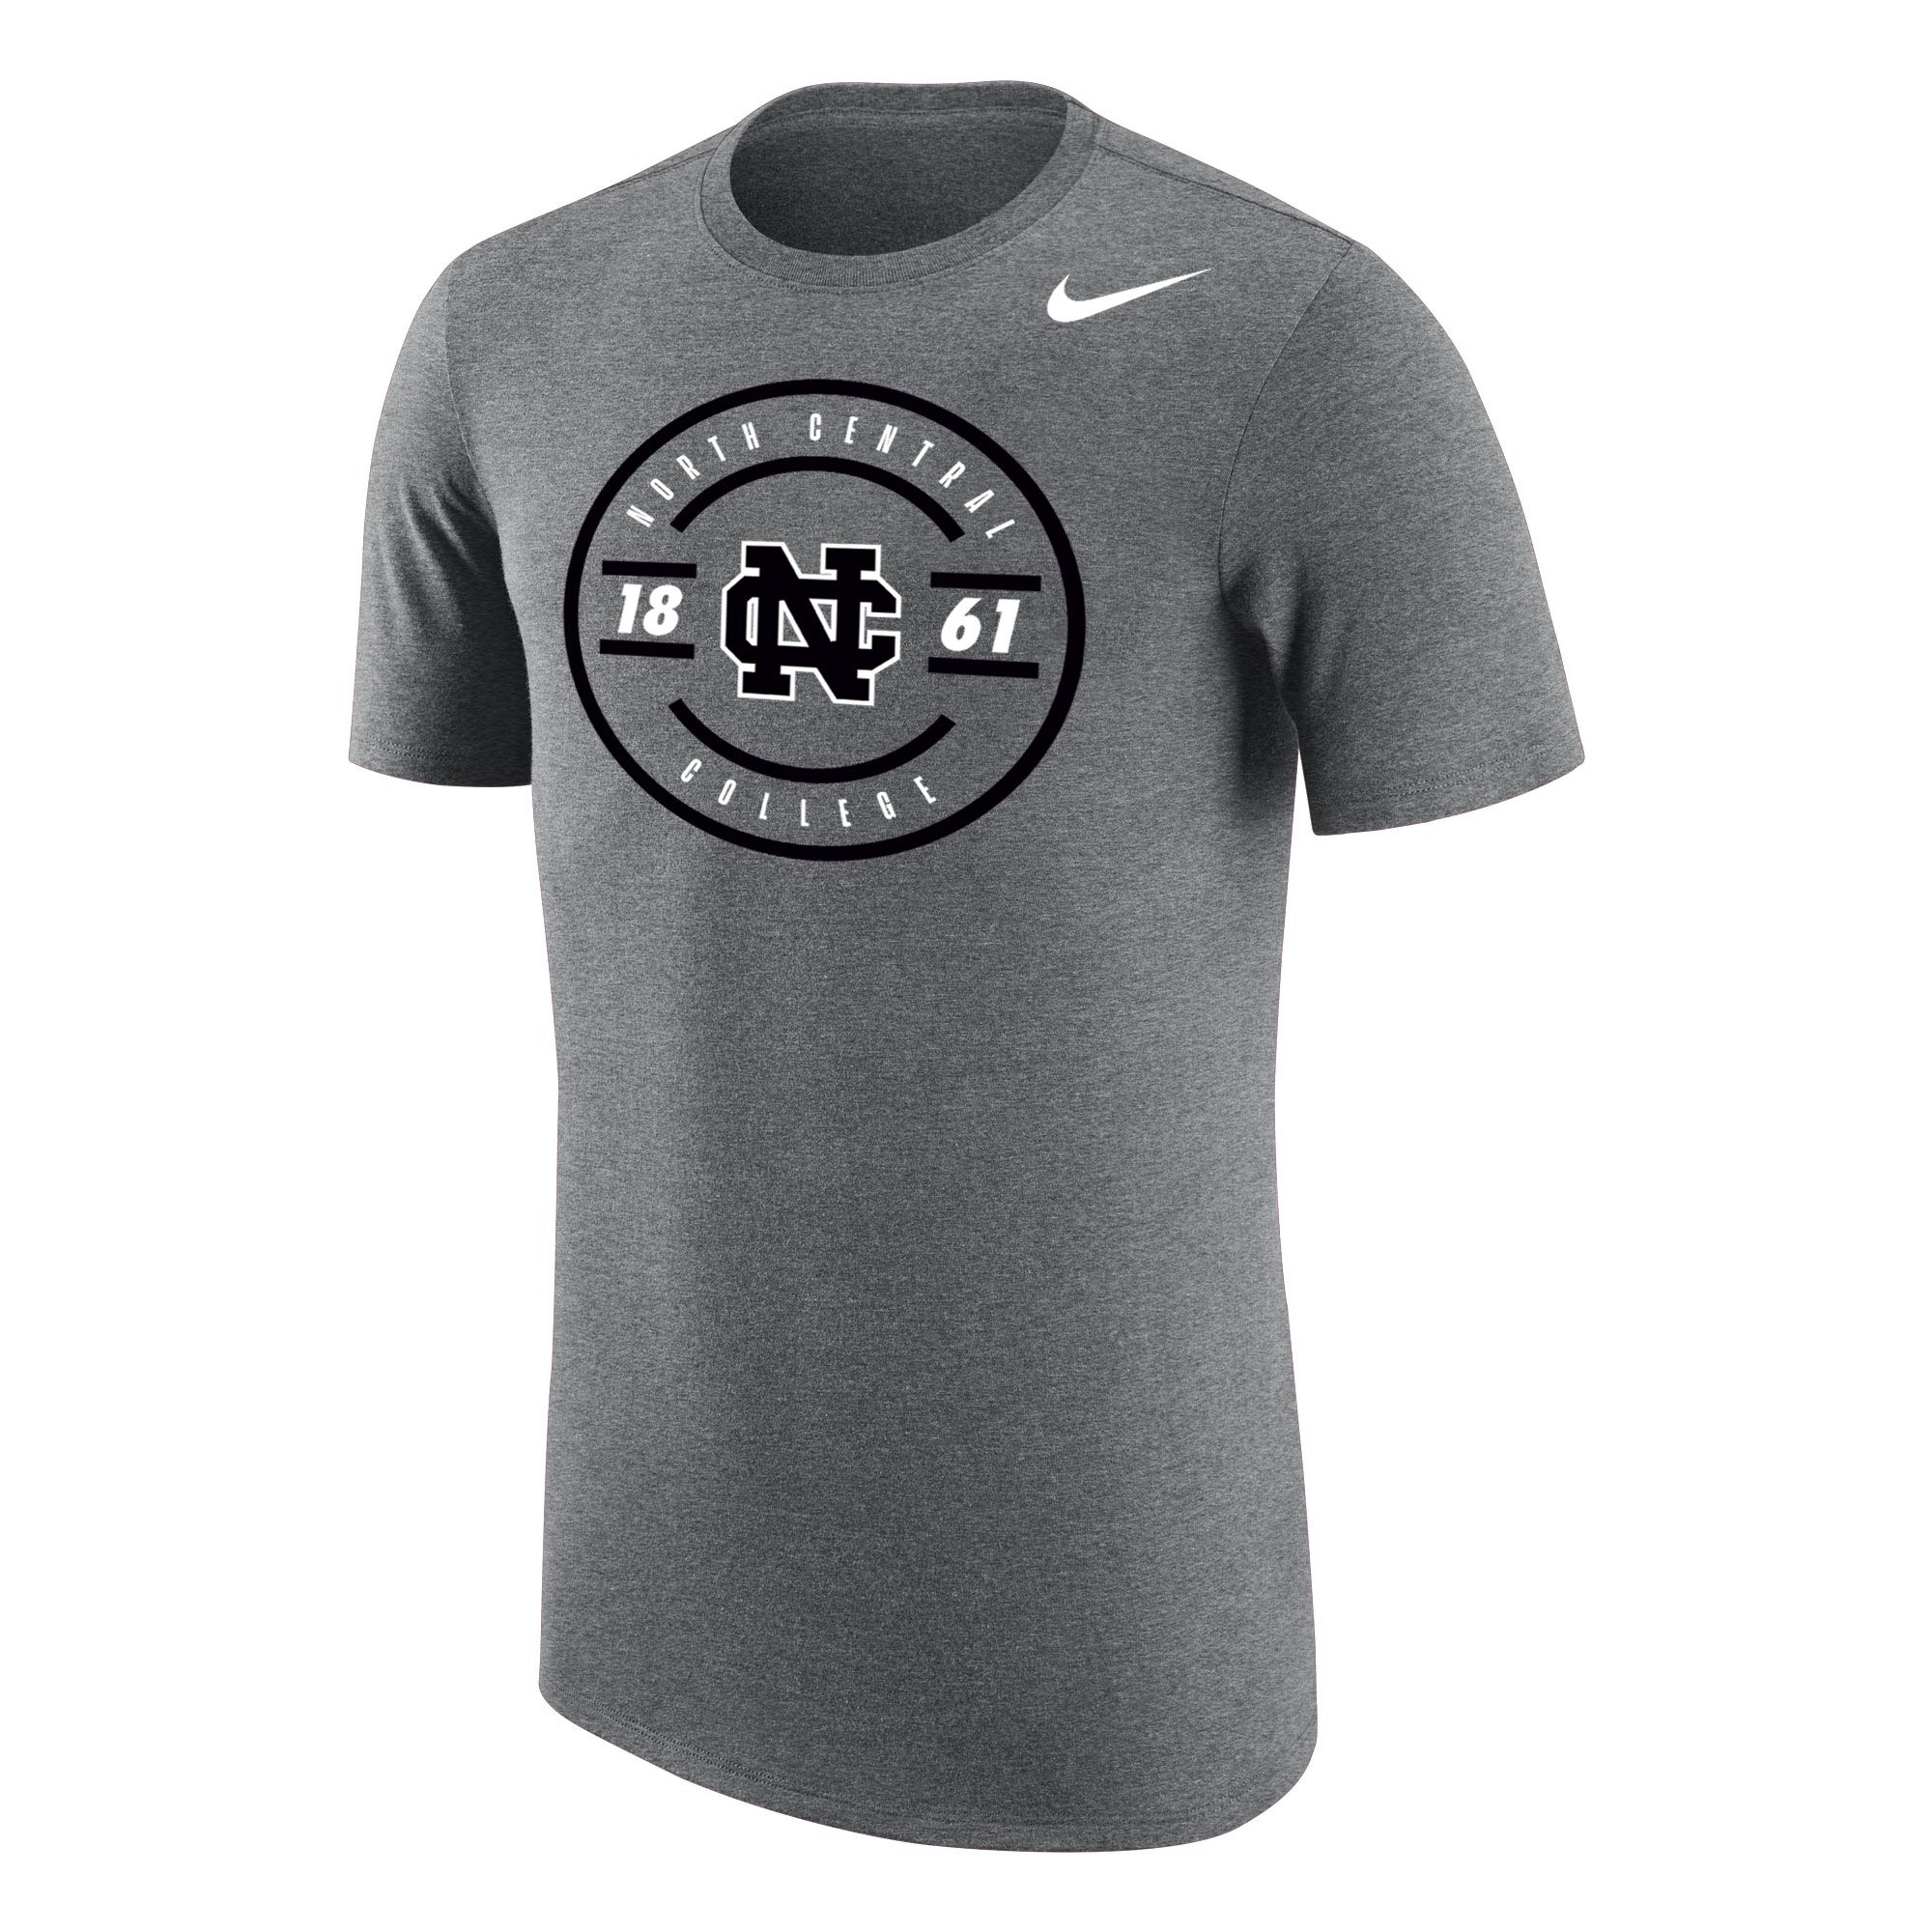 Alternative Image for the Nike Tri-Blend Short Sleeve Tee product